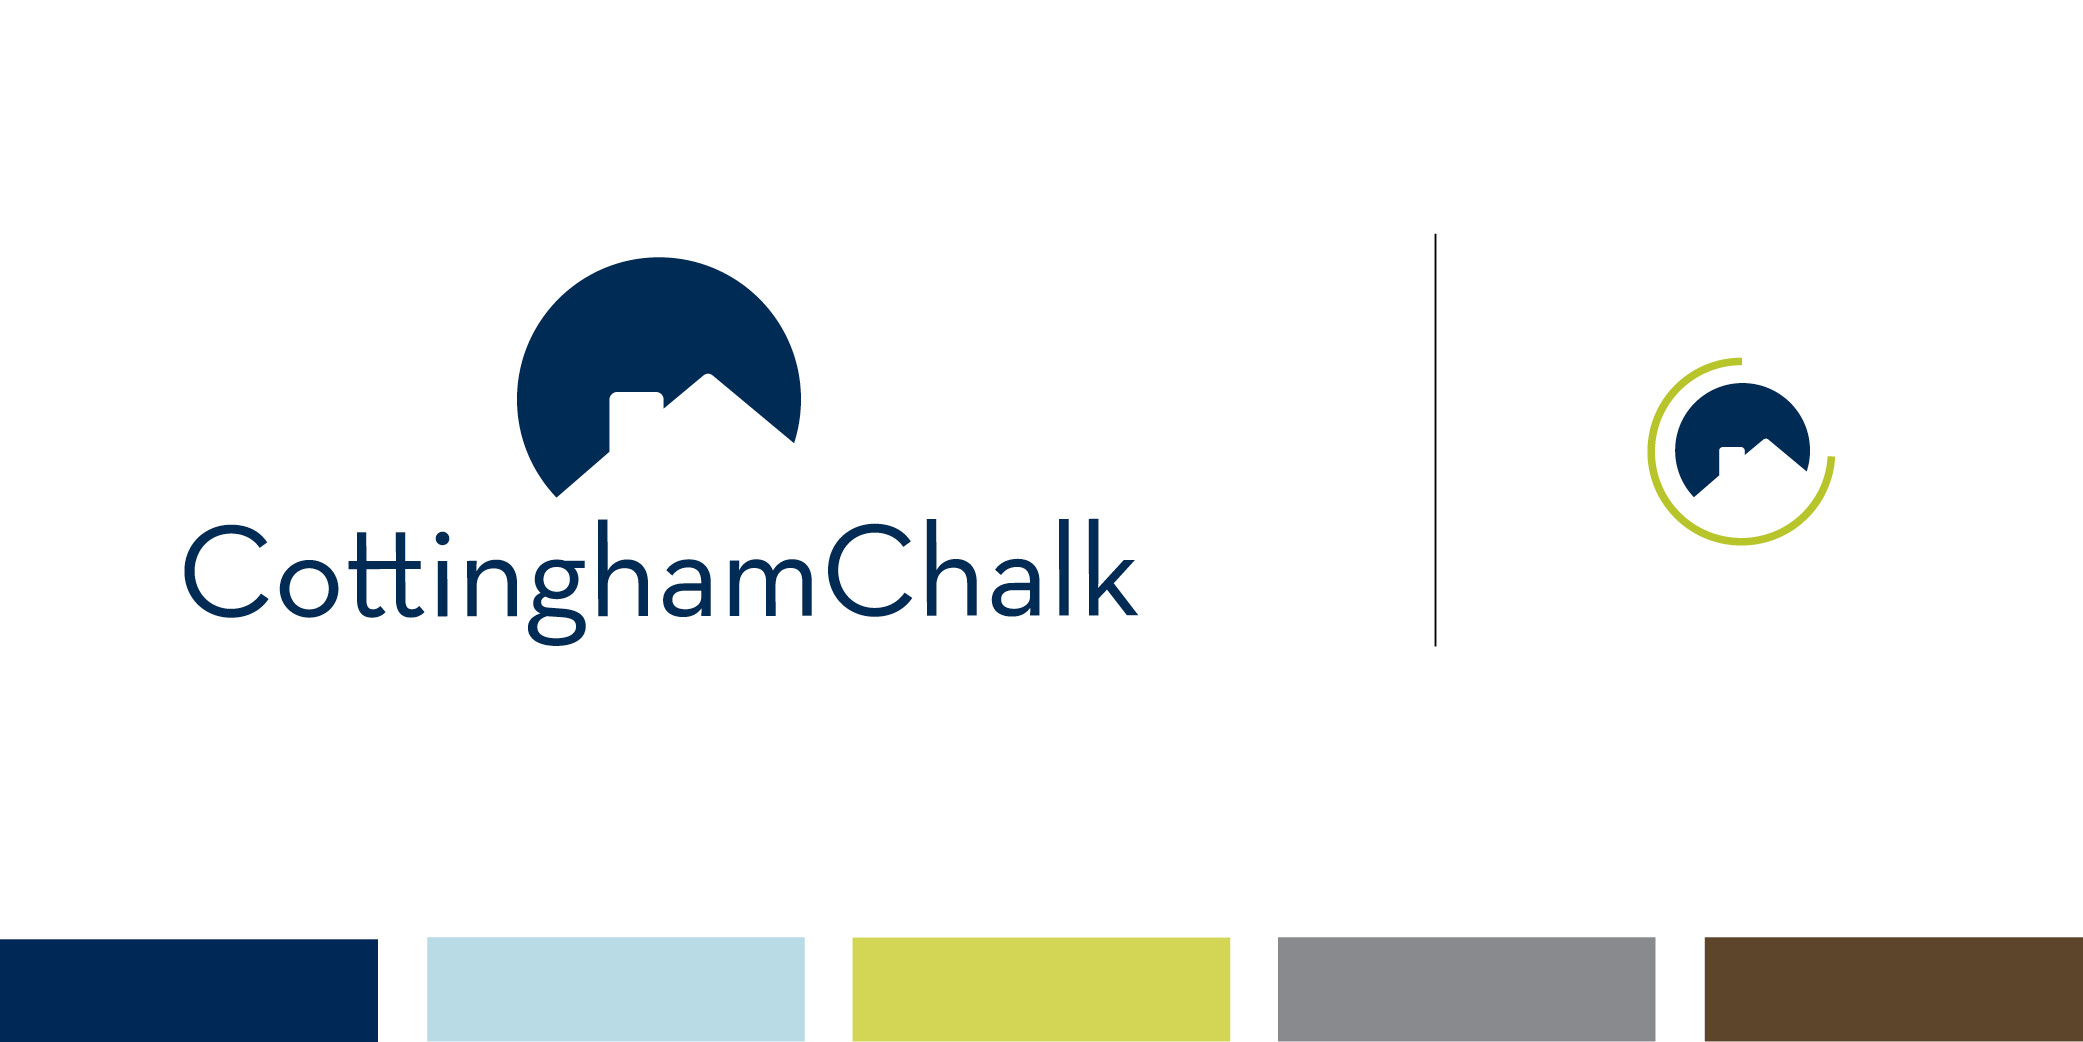 The Cottingham Chalk logo features both a typeface and design element.